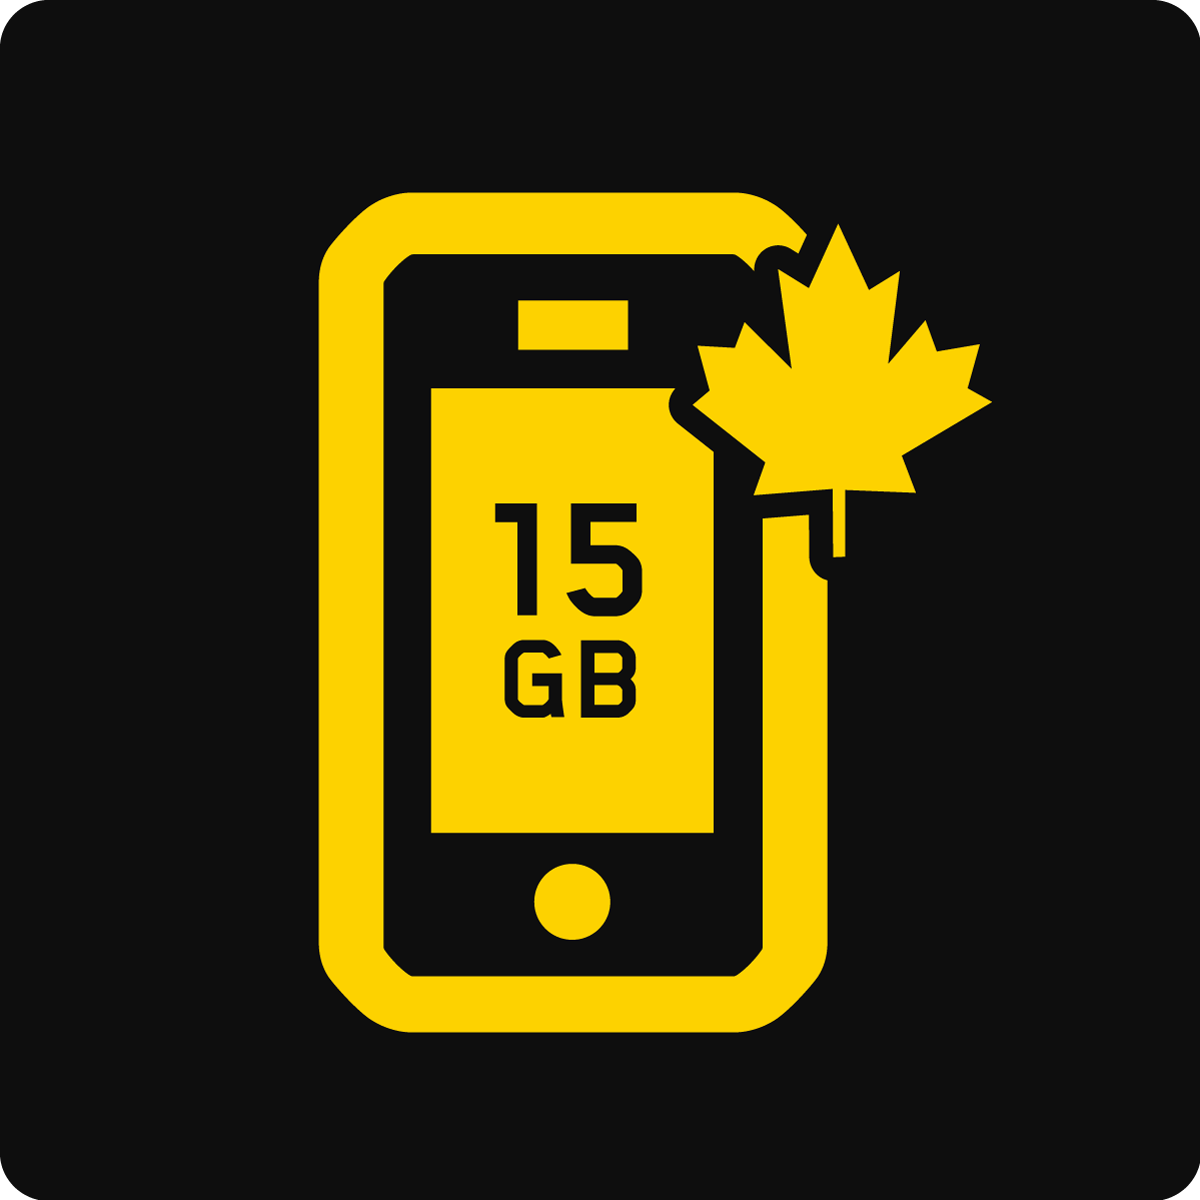 Canada 15 GB Business Mobile plan